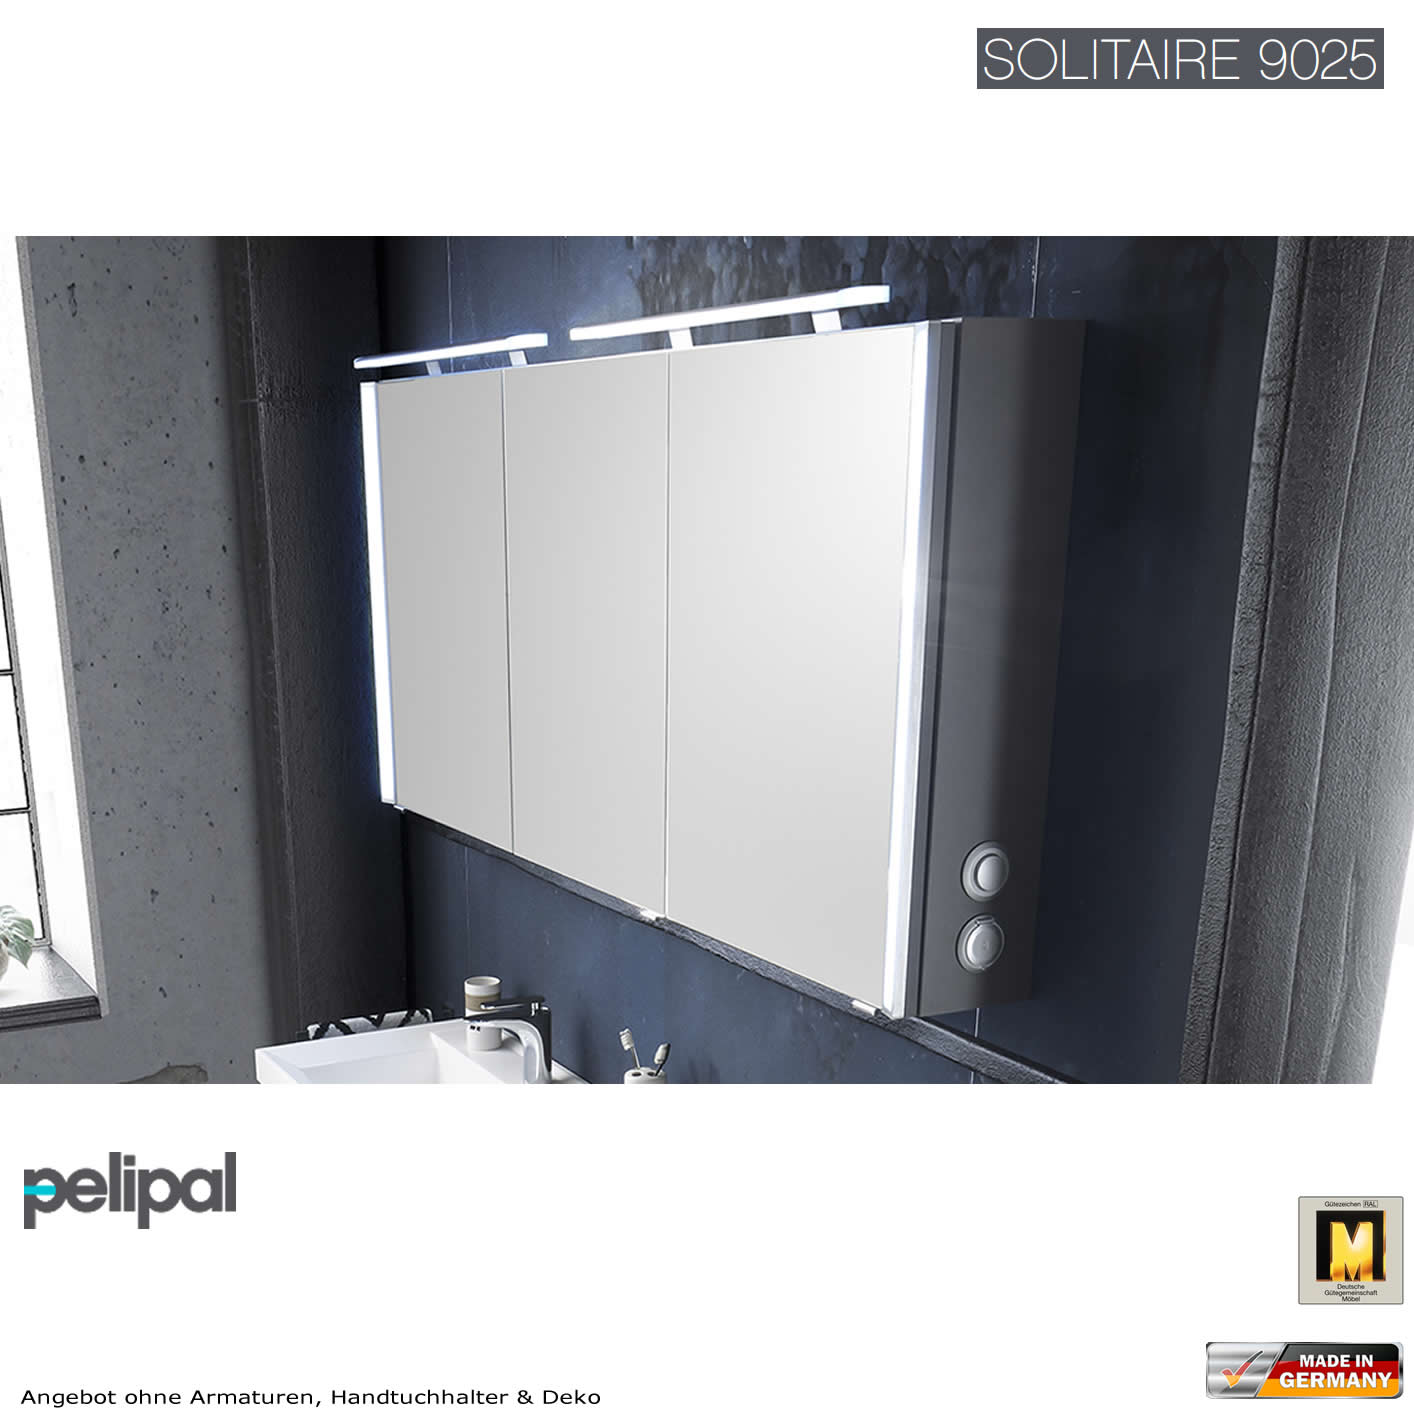 pelipal solitaire 9025 spiegelschrank 160 cm impulsbad. Black Bedroom Furniture Sets. Home Design Ideas